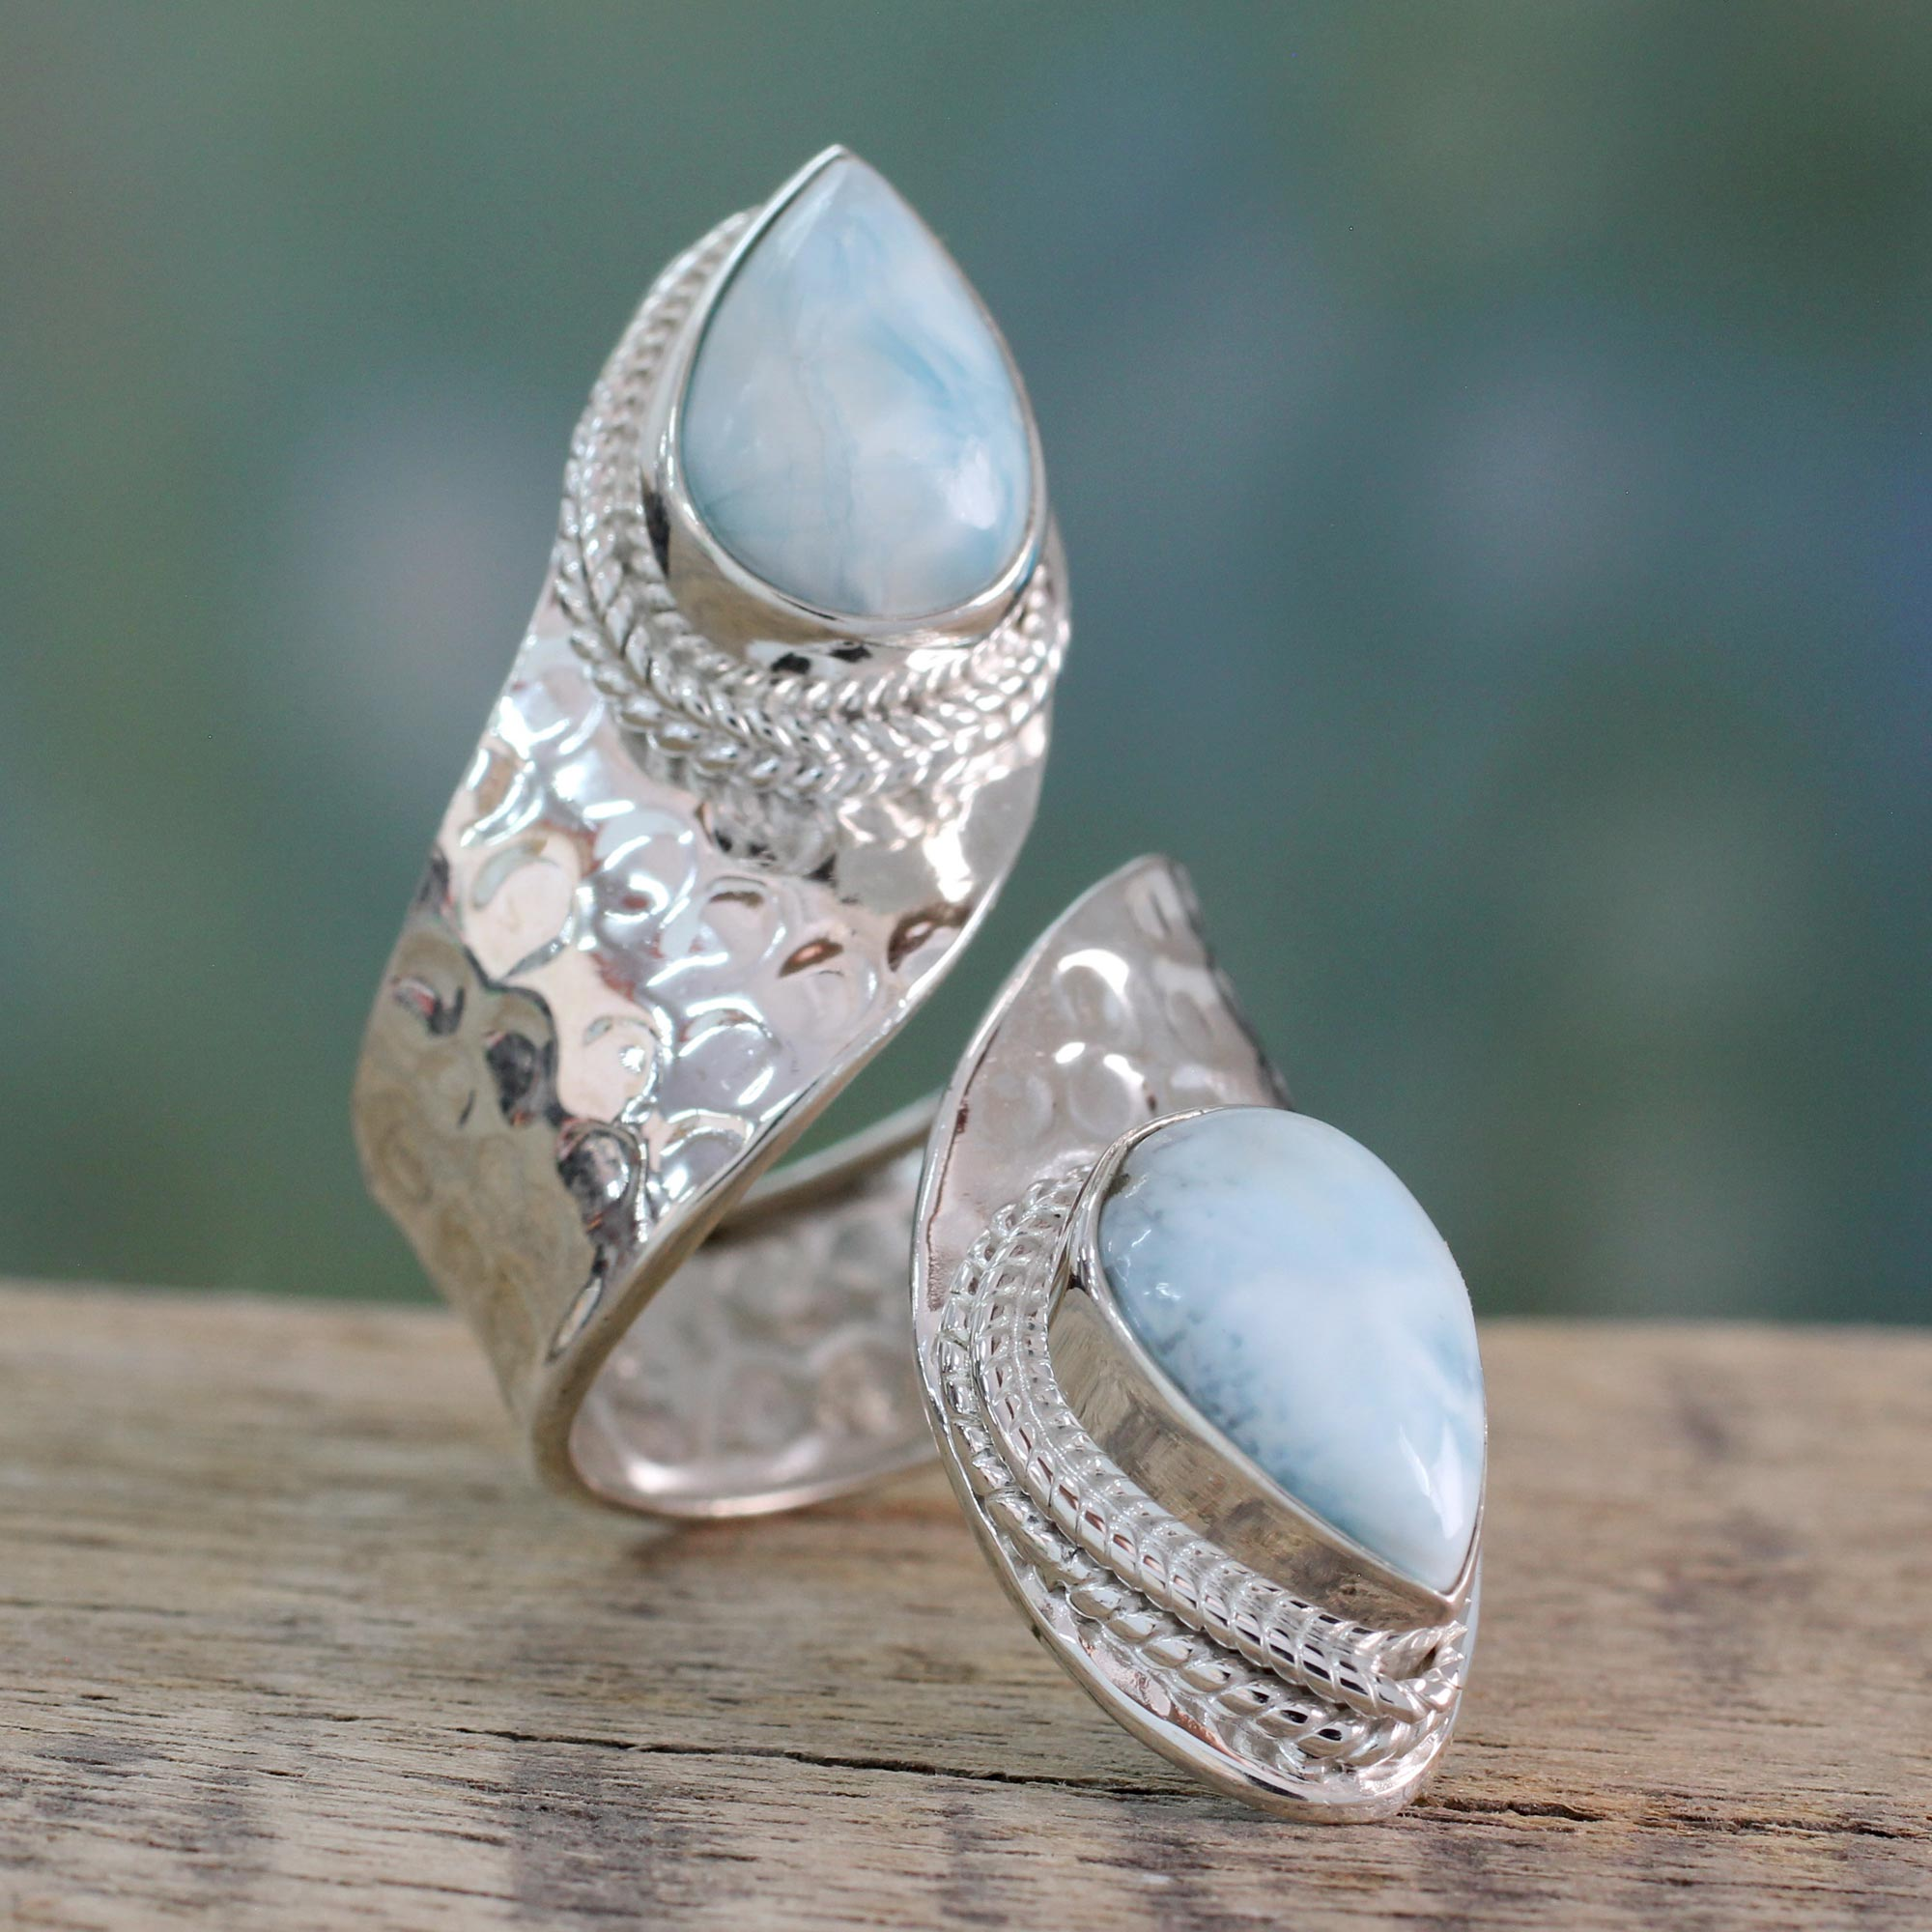 Wrap Style Ring in Sterling Silver with Larimar Gems, 'Dreamy Duo silver jewelry, mom, unique mother's day gifts